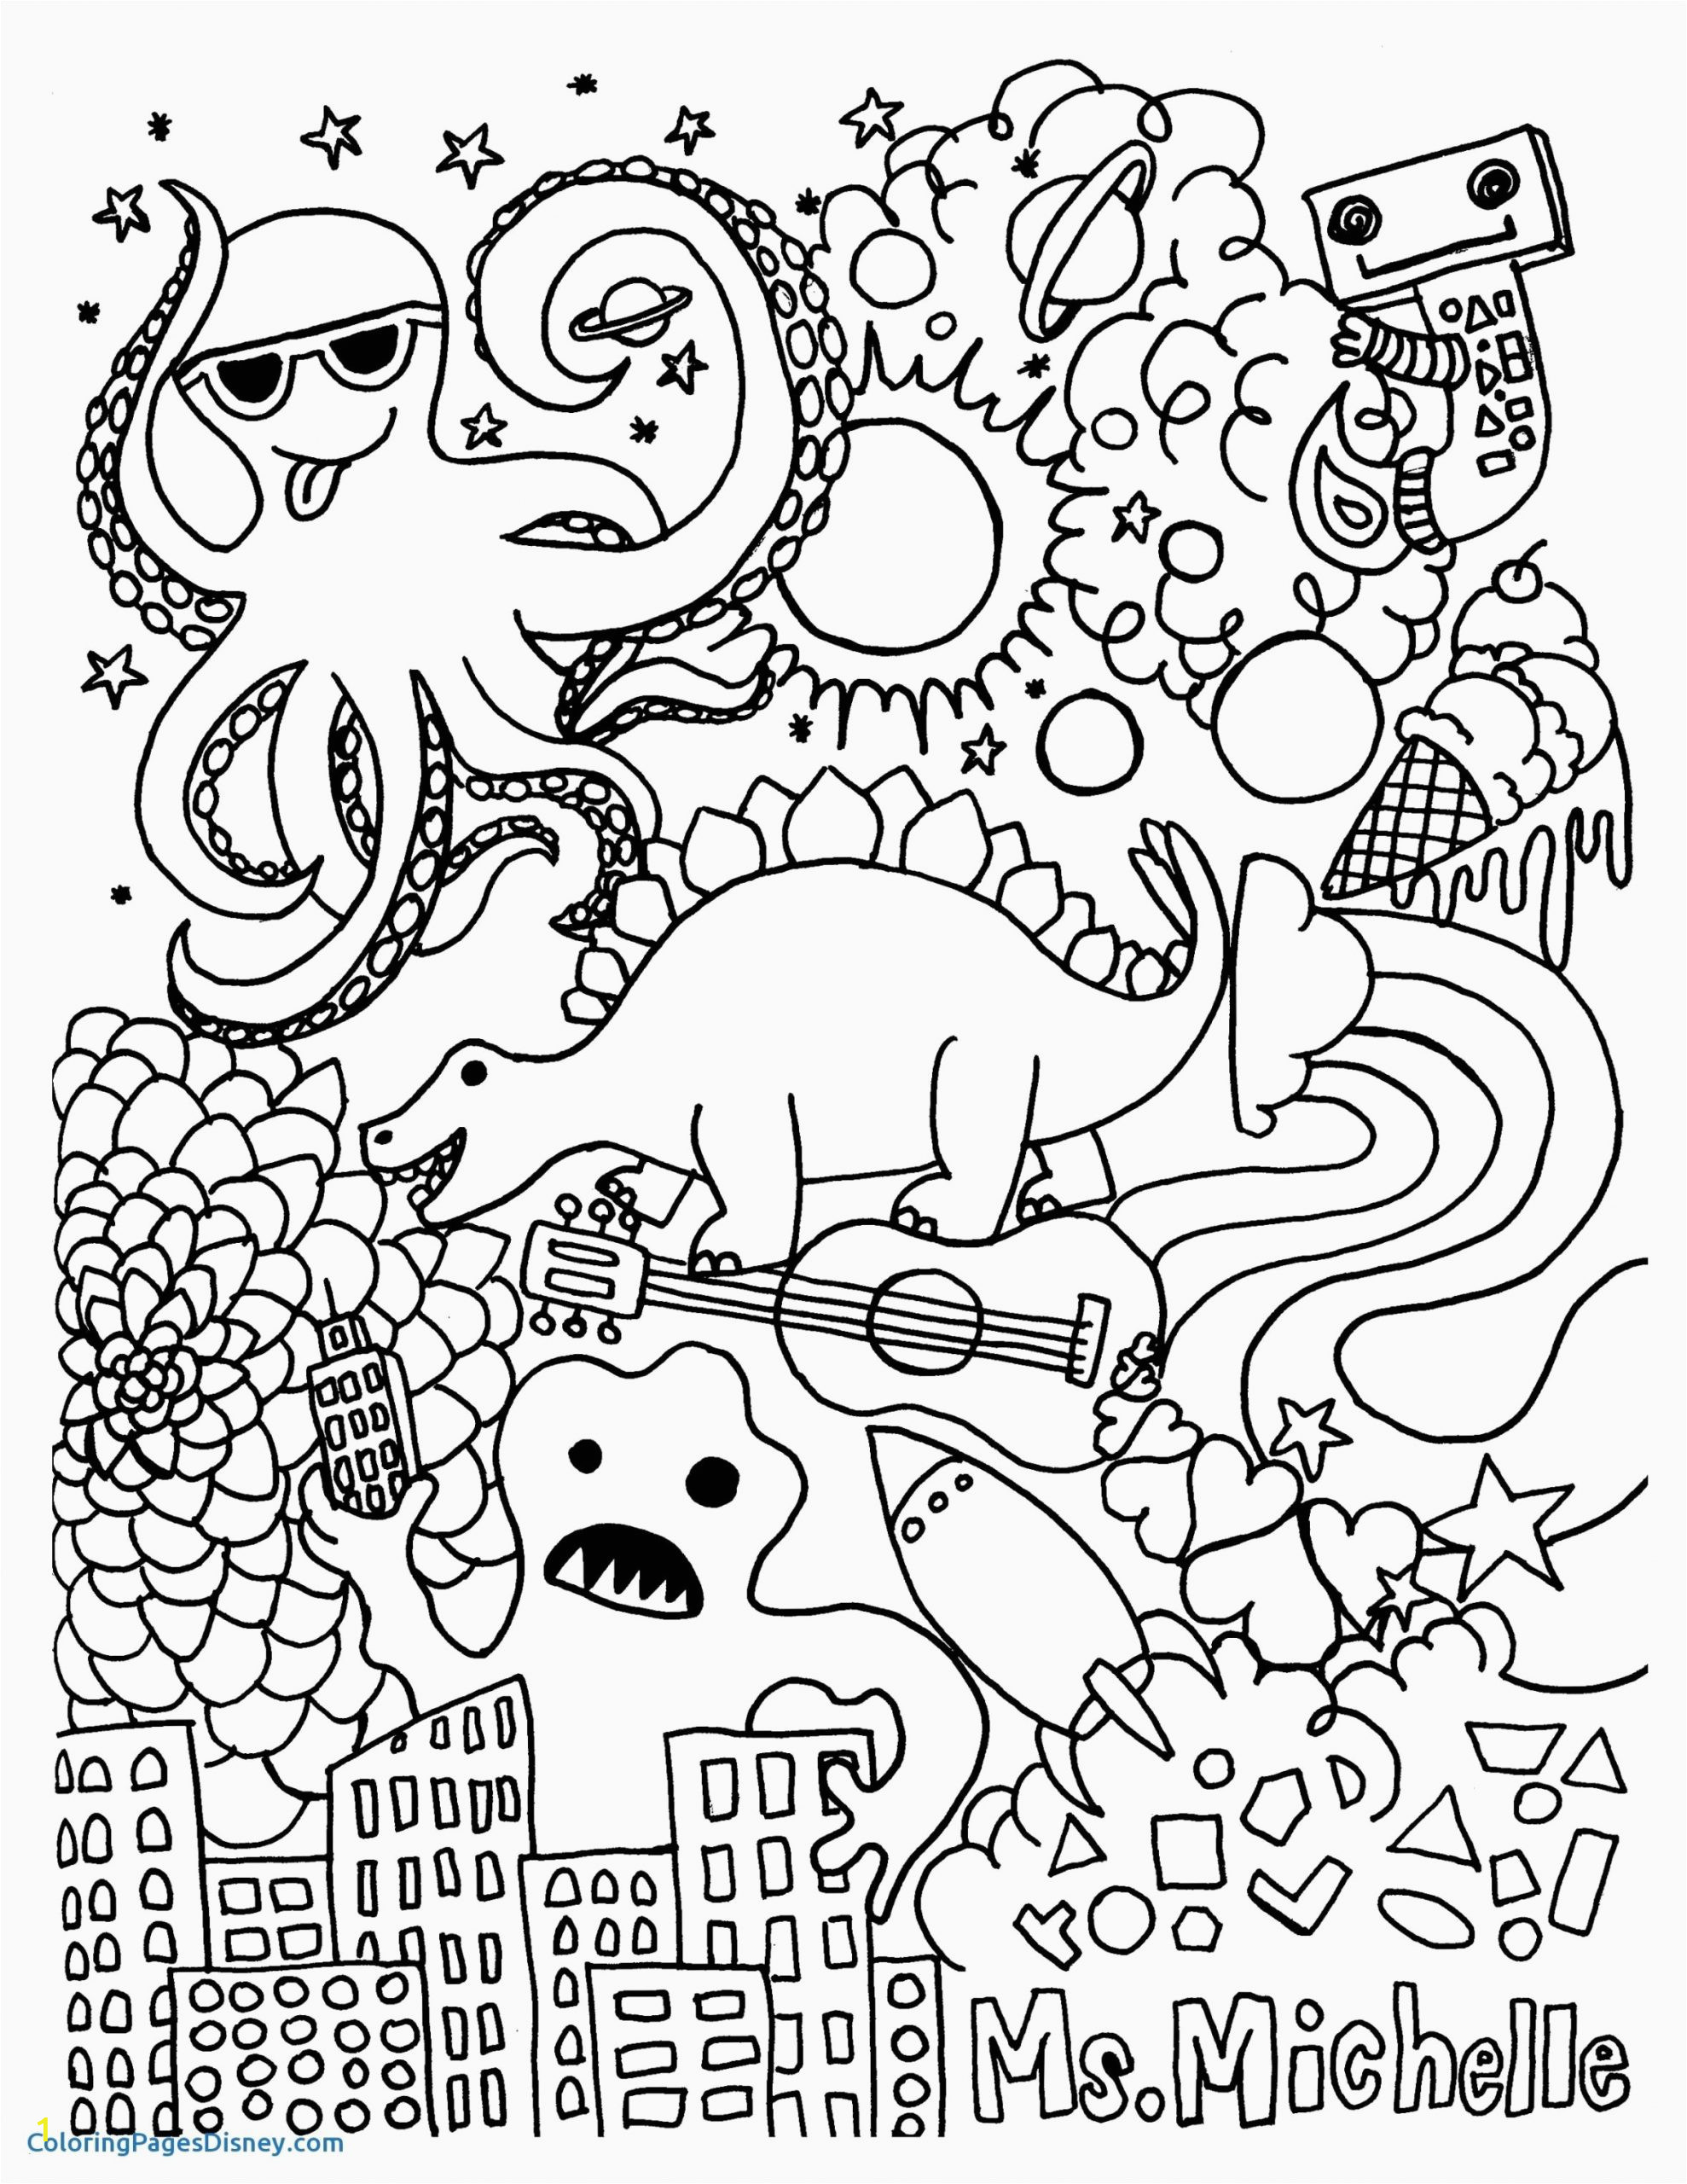 hello kitty coloring paper smurfs pages lion king cool printable for adults dragon ball zombie kids skull incredibles book the very hungry caterpillar page farm preschool anatomy and scaled